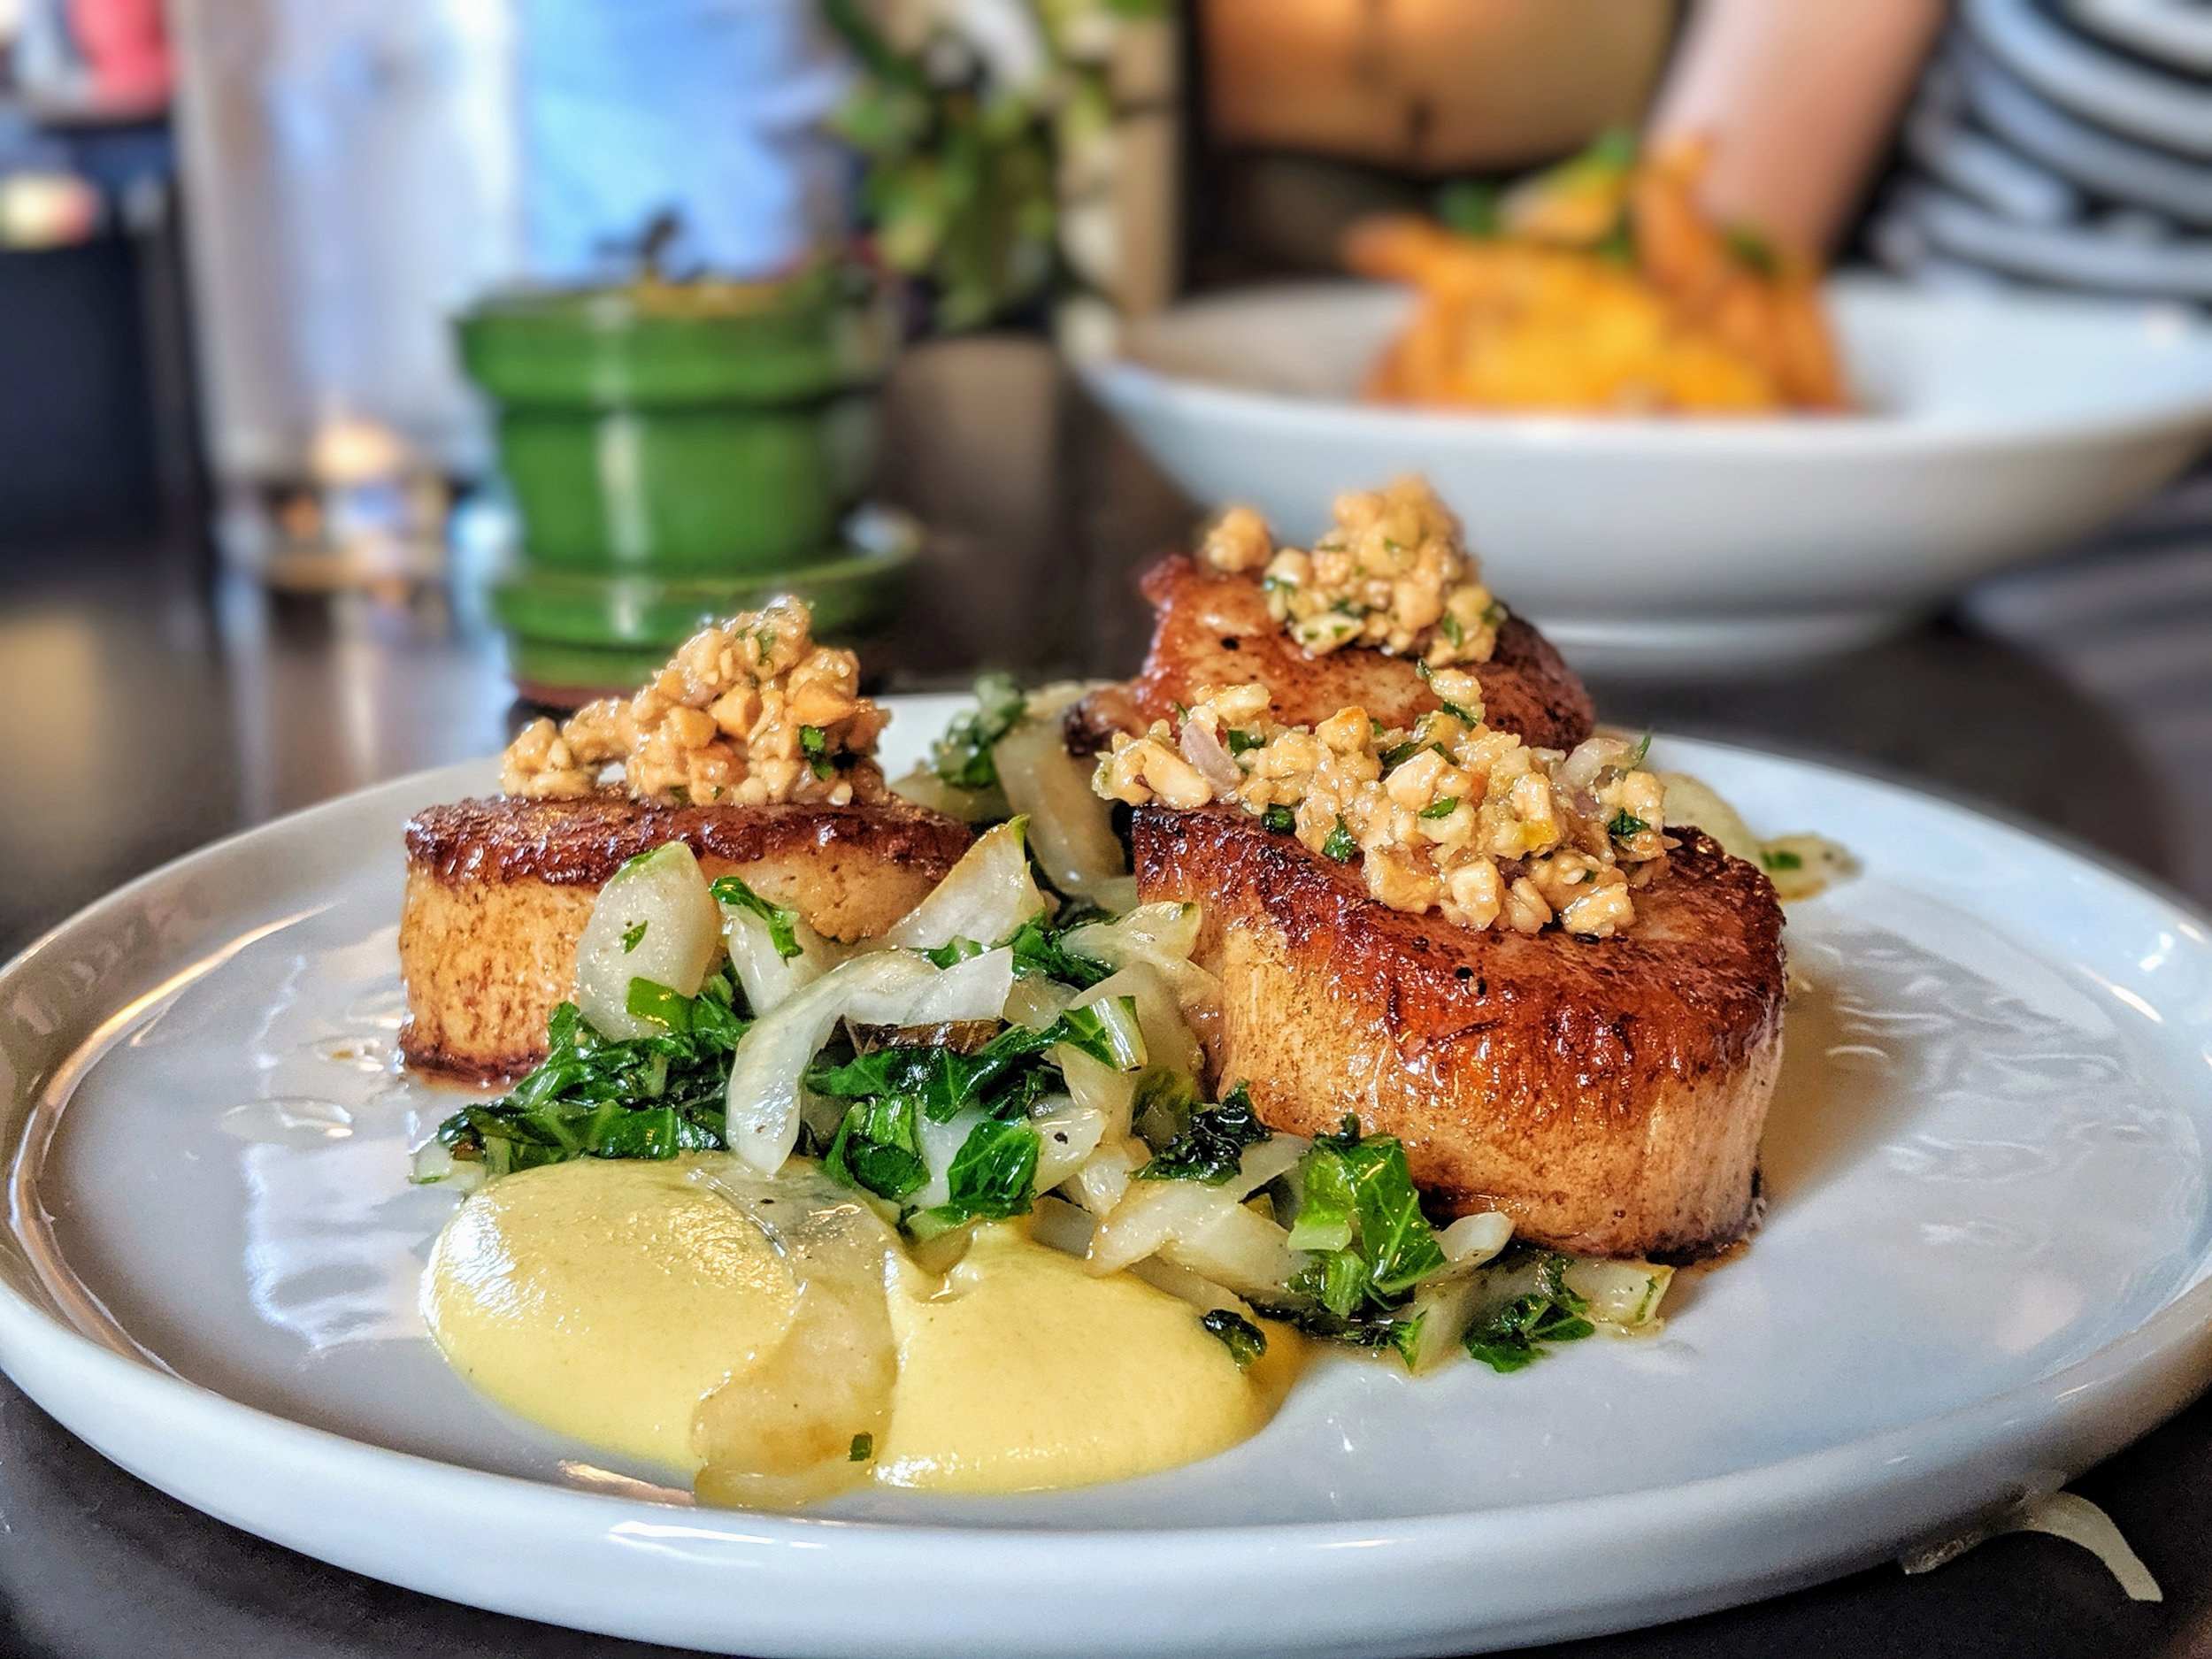 - Scallops with Cauliflower Purée, Bok Choy, Cashew Relish from Fress